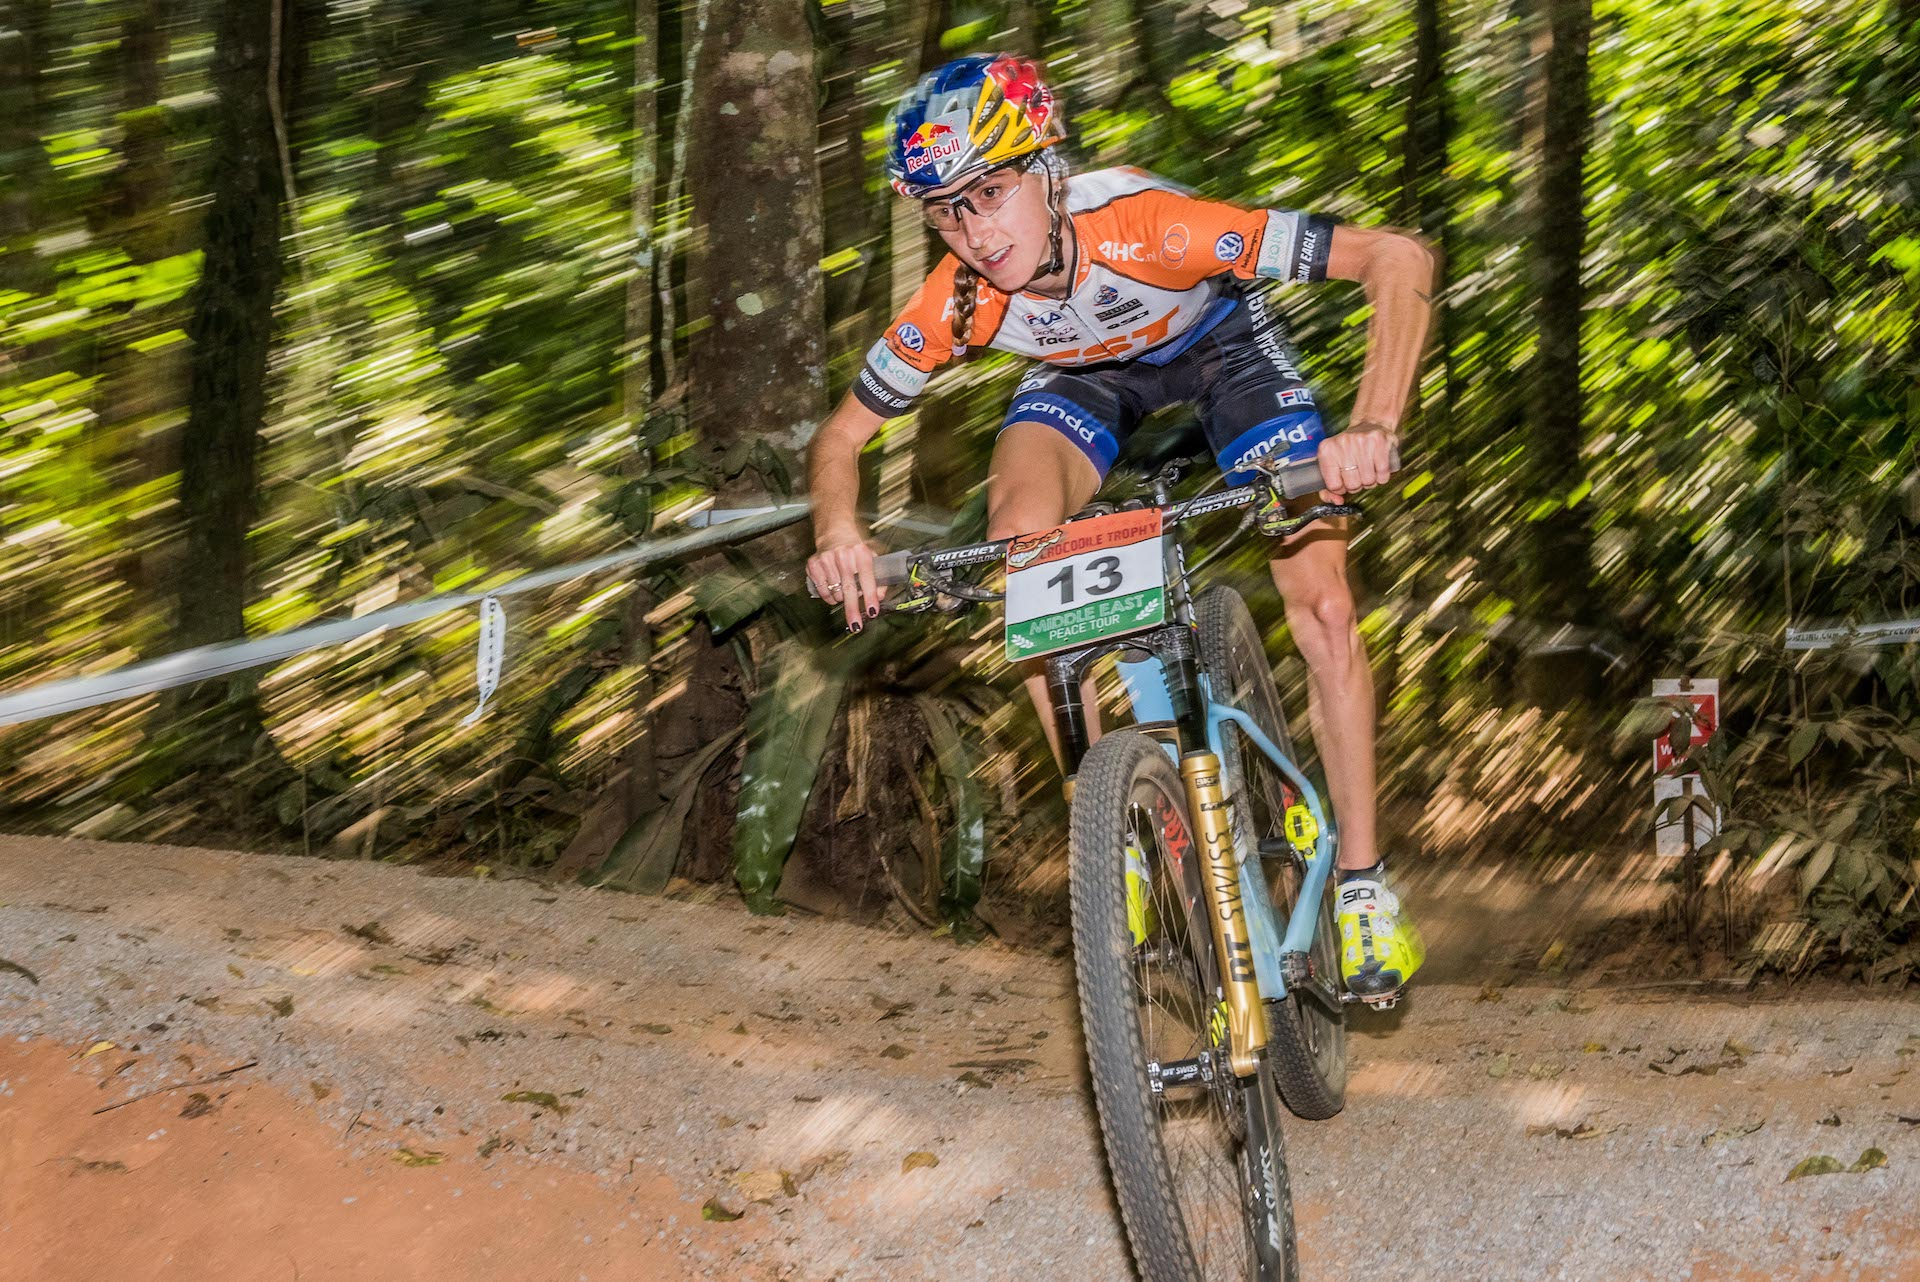 The Crocodile Trophy – the most legendary mountain bike stage race in the world.